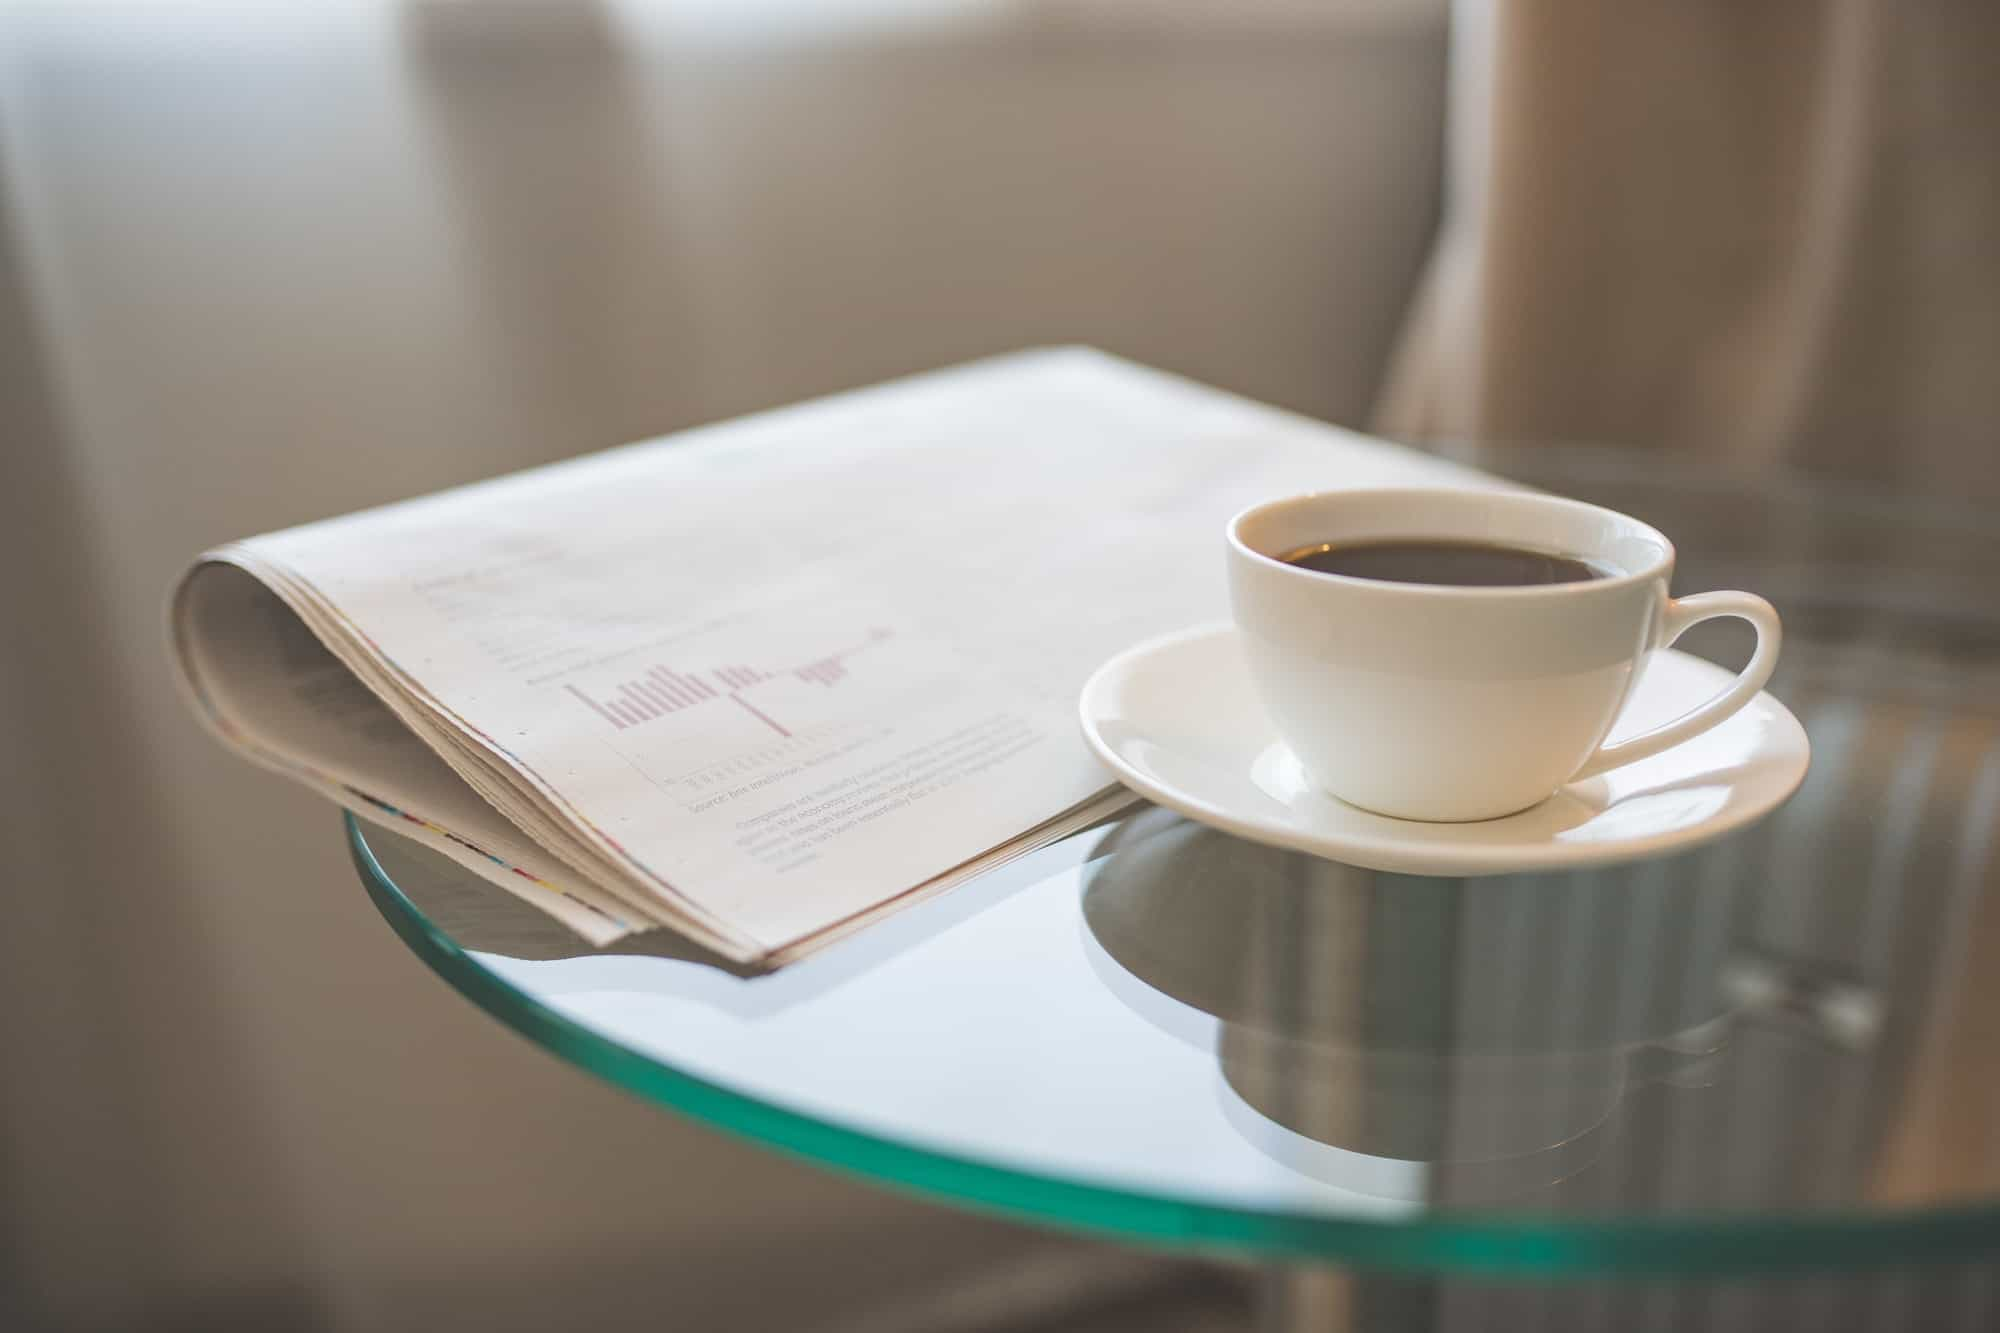 A cup of coffee and a newspaper